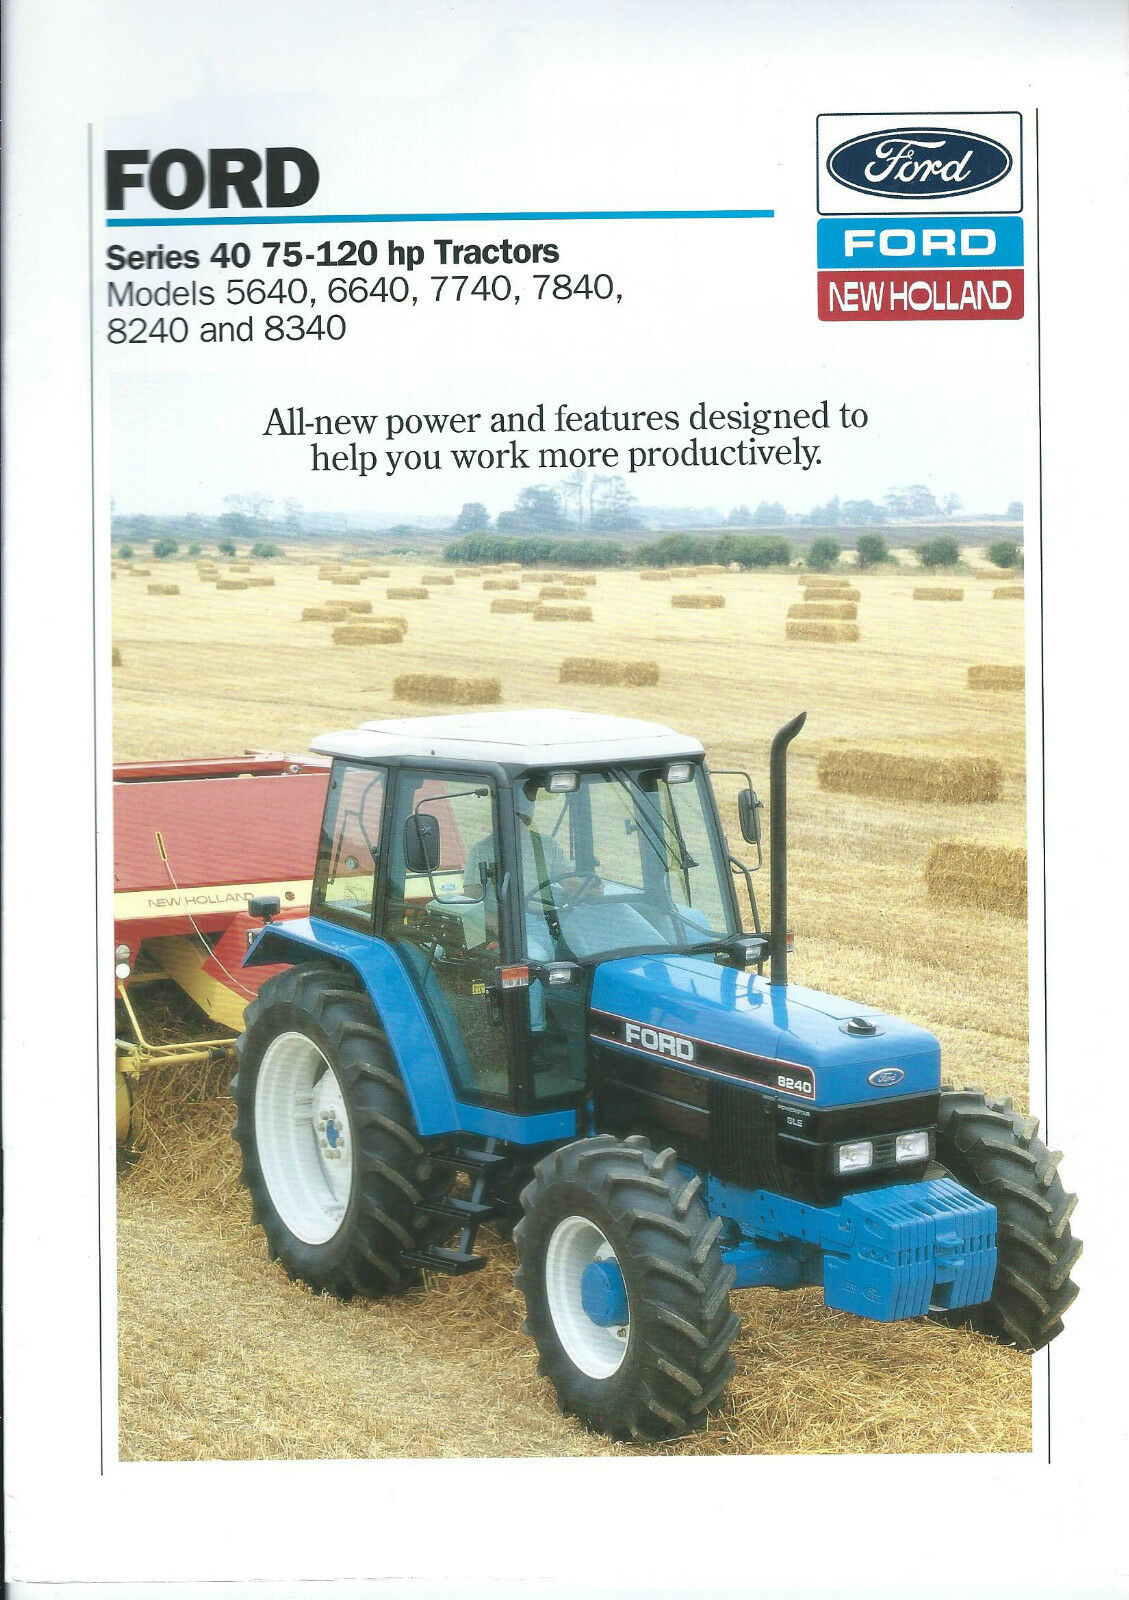 Farm Tractor Brochure - Ford - 5640 6640 7740 7840 8240 8340 Series 40  (F4326 1 of 1Only 1 available ...